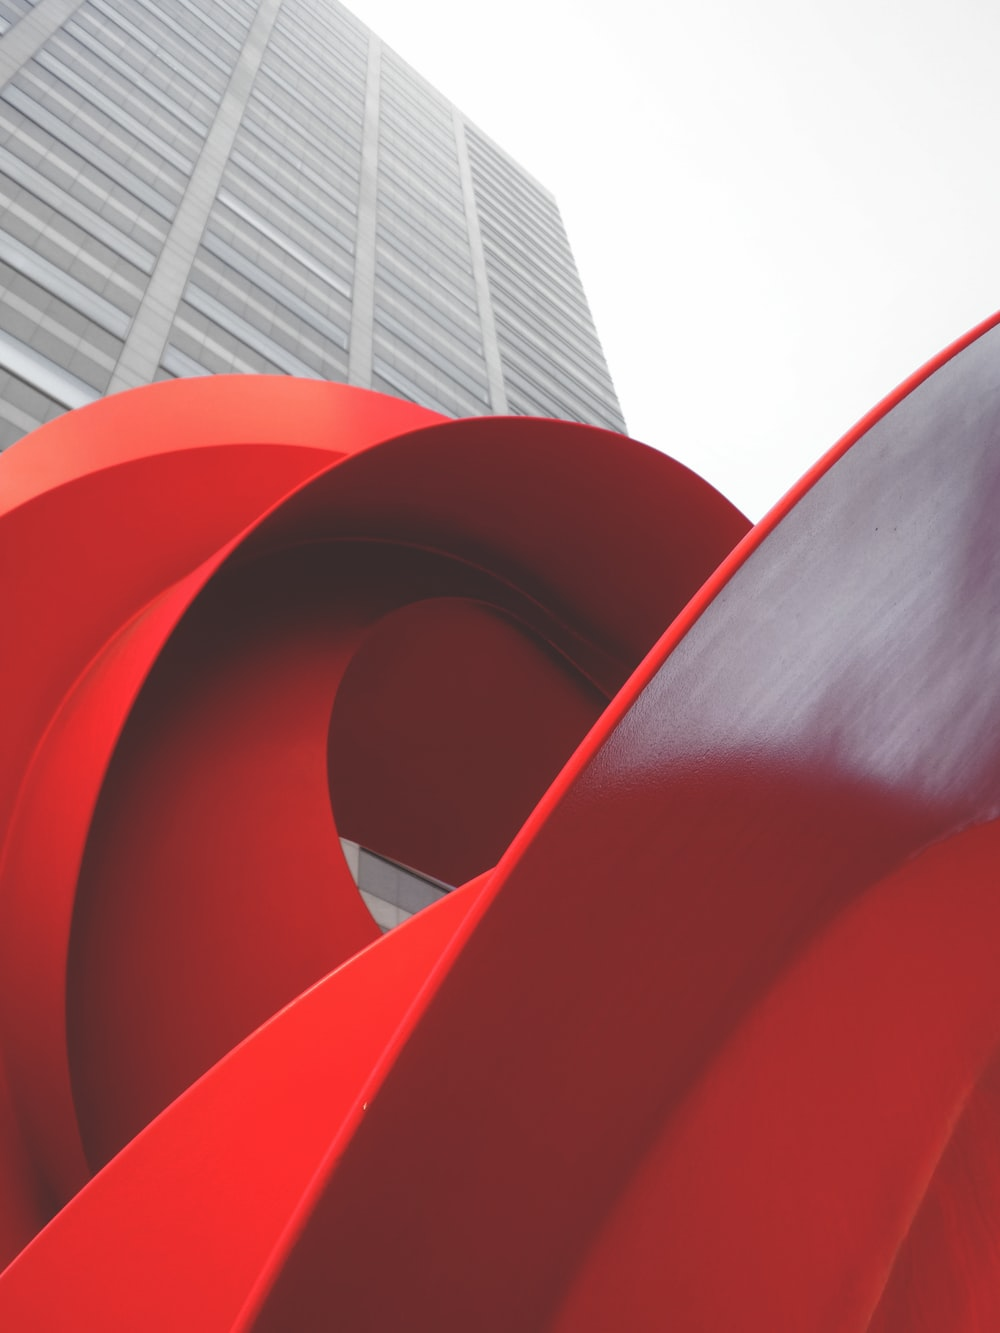 red spiral stairs during daytime